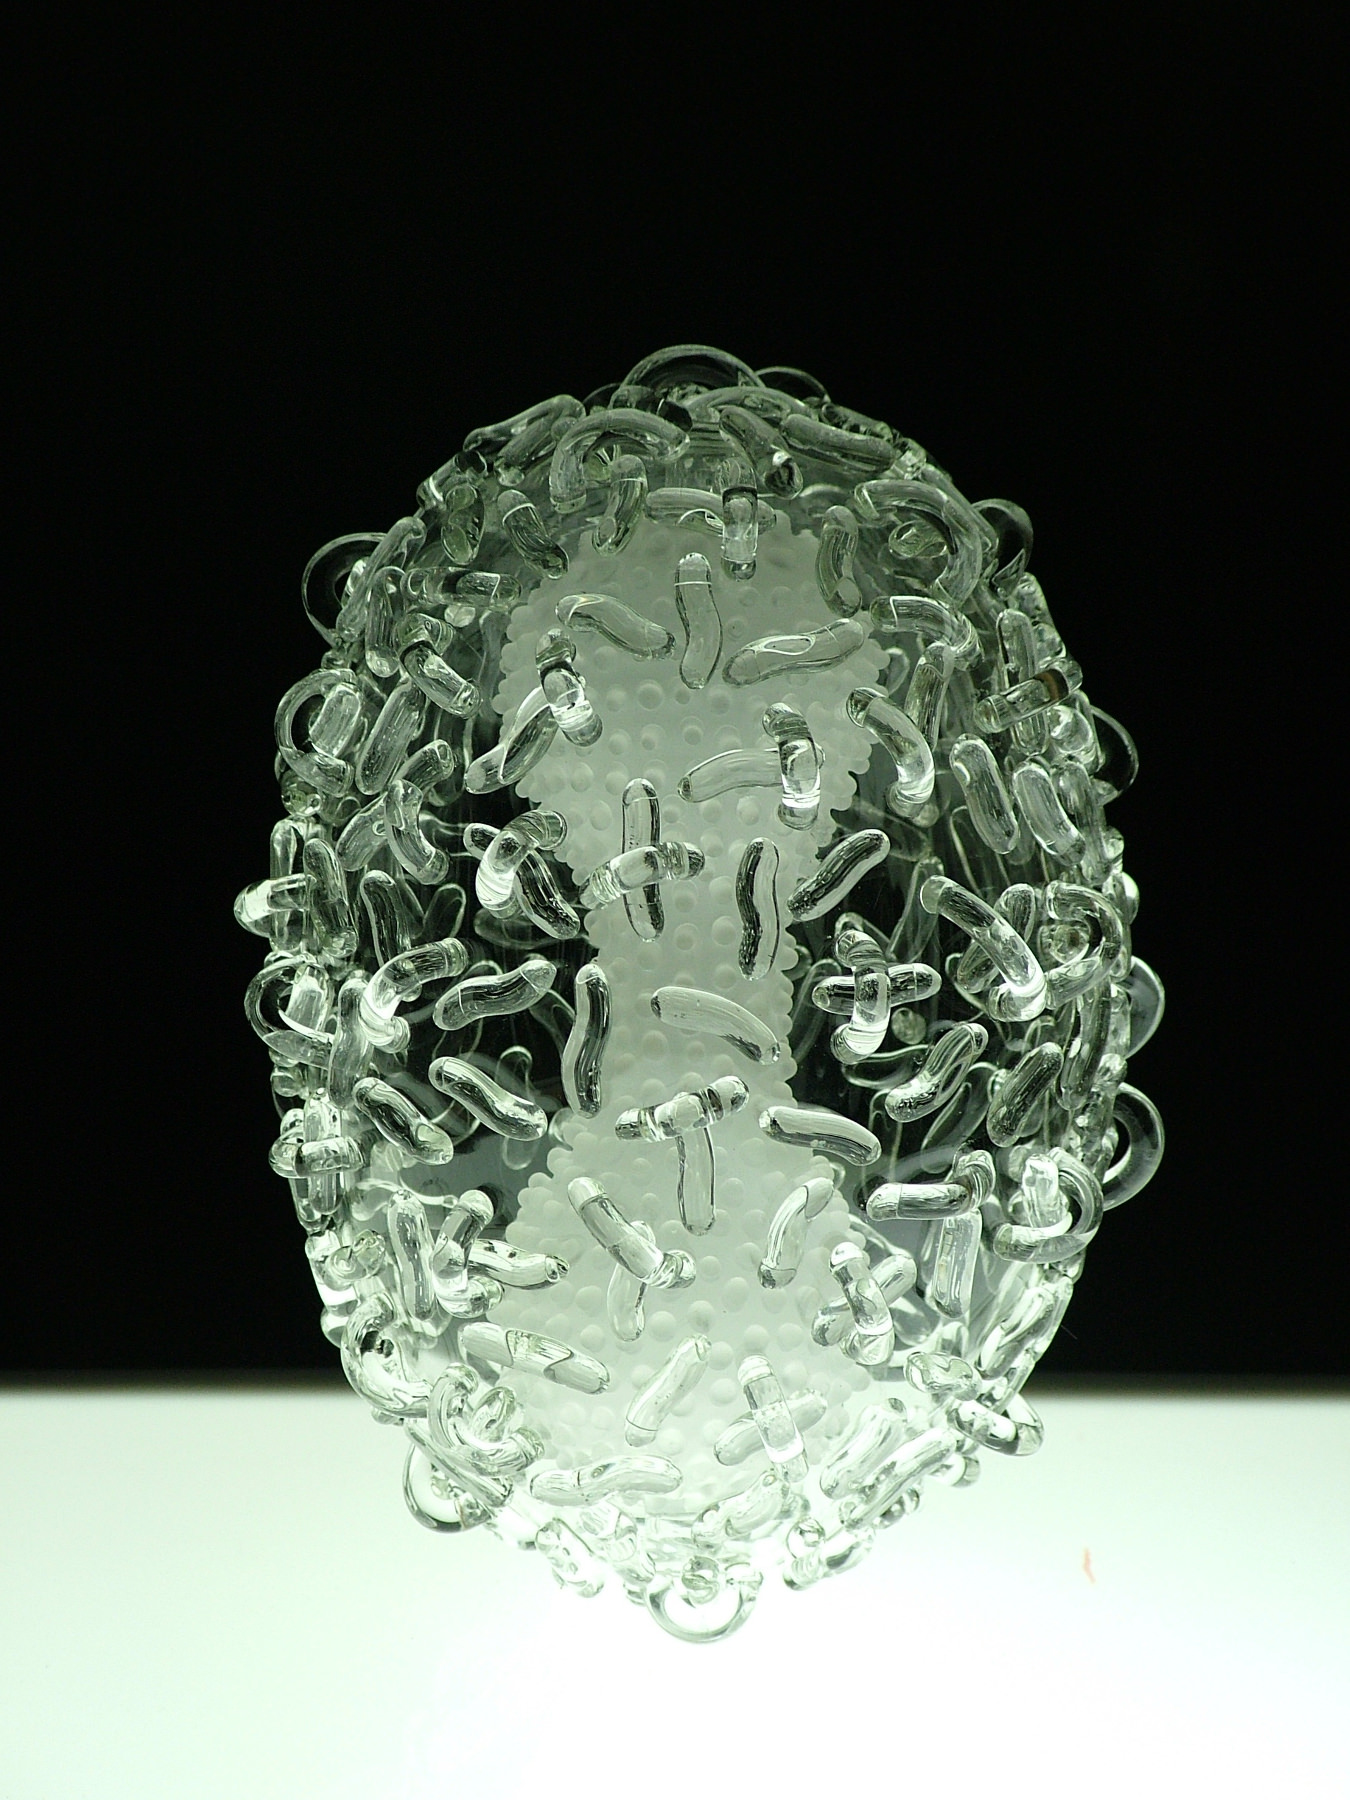 Luke Jerram - Smallpox